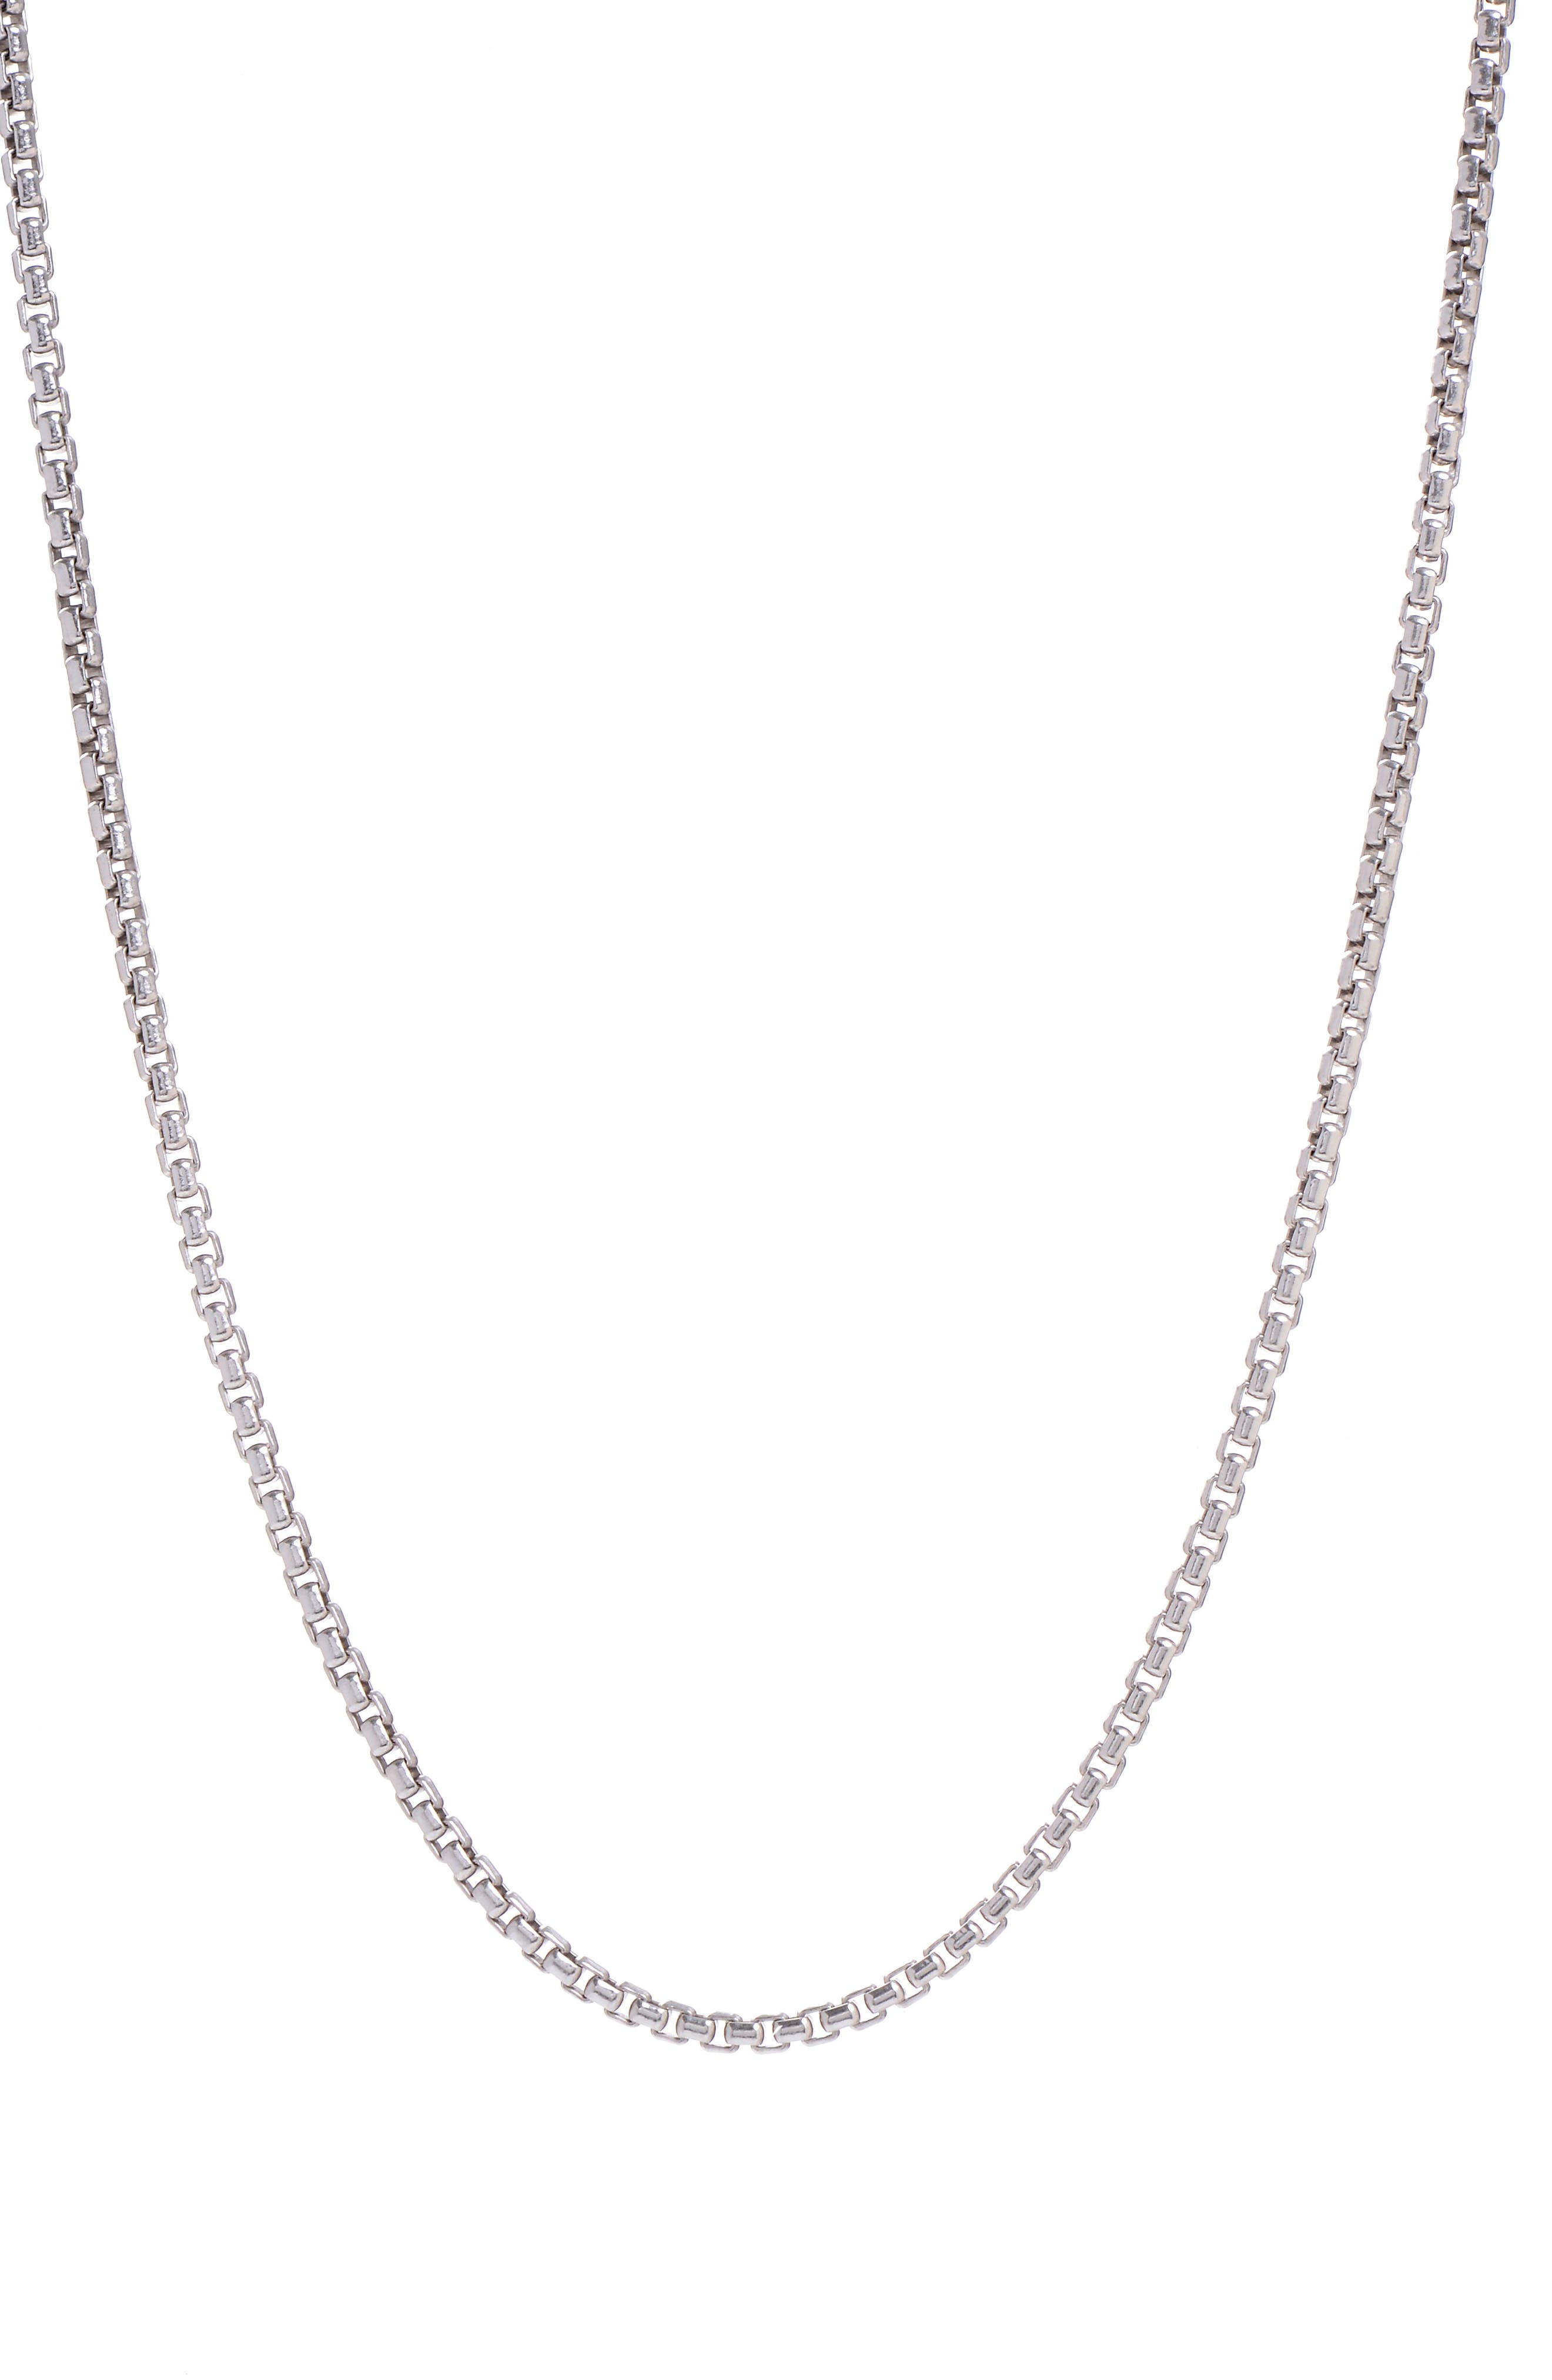 Box Chain Necklace,                             Main thumbnail 1, color,                             Silver